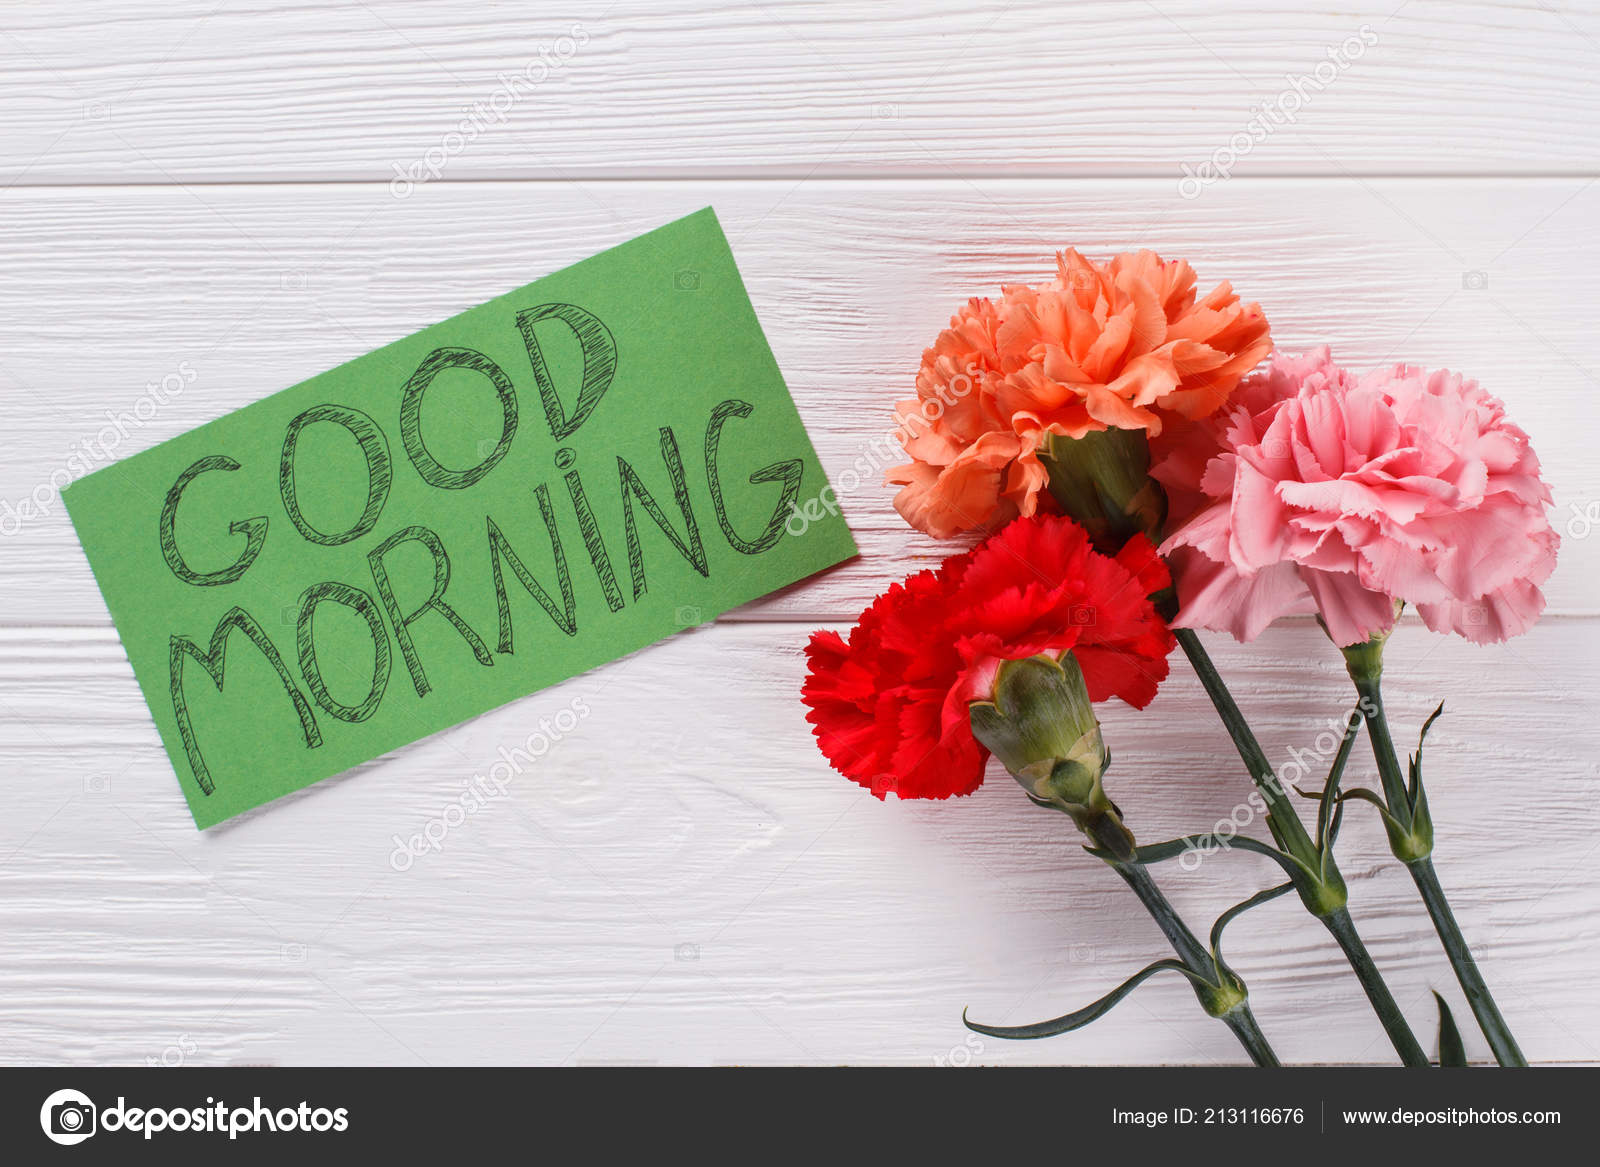 Good Morning Wish Note And Colorful Carnation Flowers Stock Photo